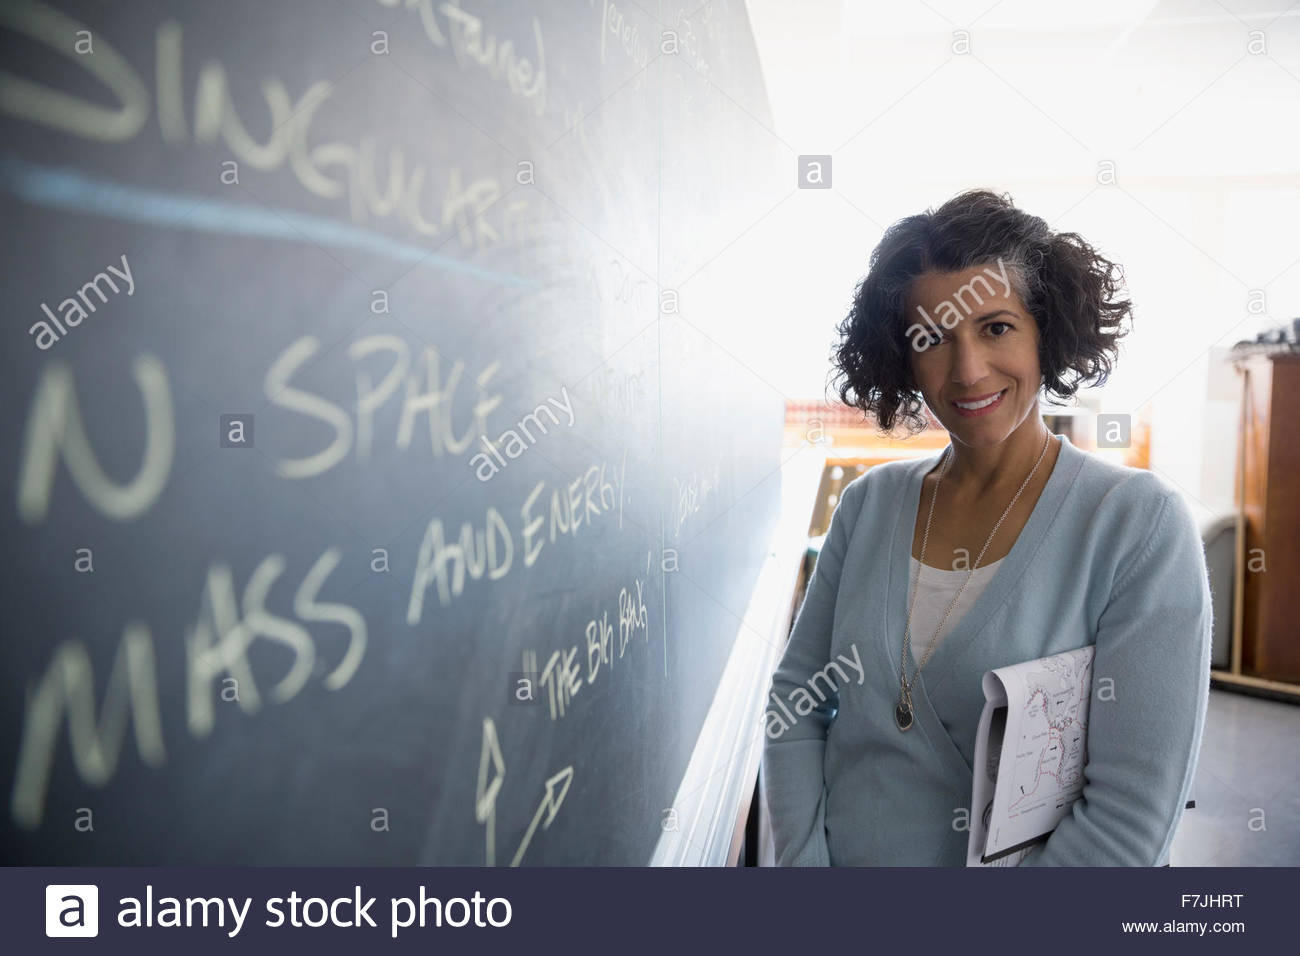 Portrait confident teacher at blackboard in classroom - Stock Image